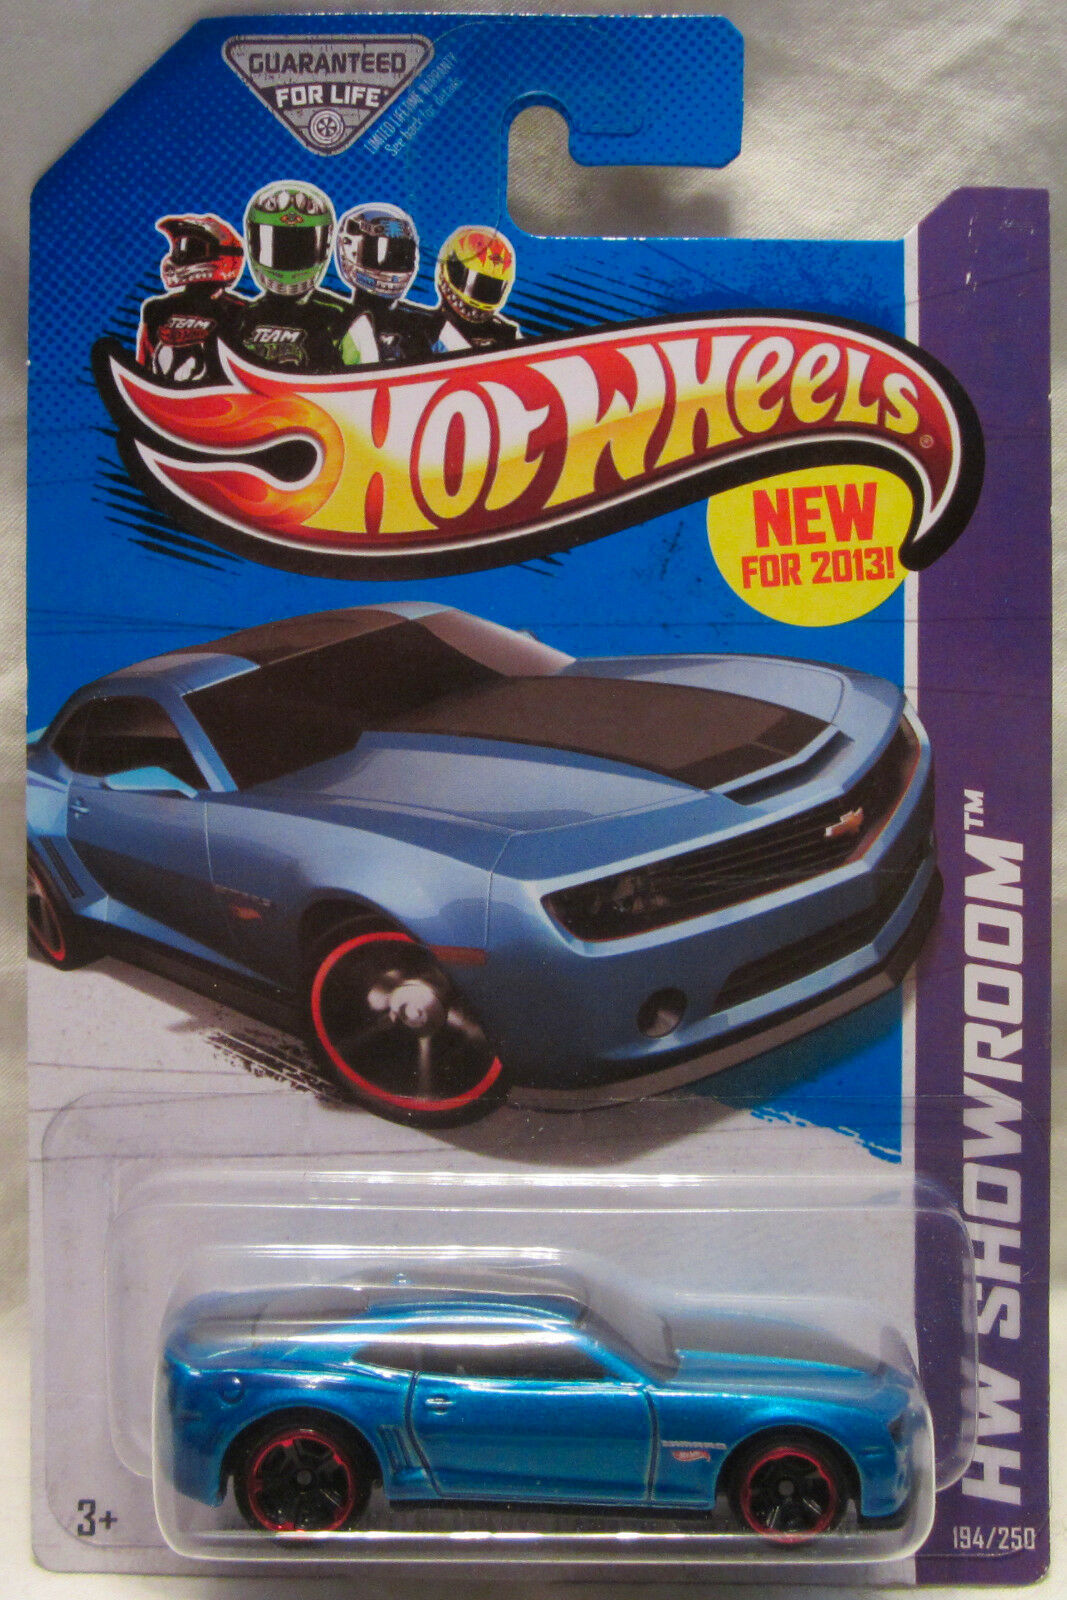 2013 Hot Wheels bluee Chevy Camaro Special Edition 194 250 - NEW